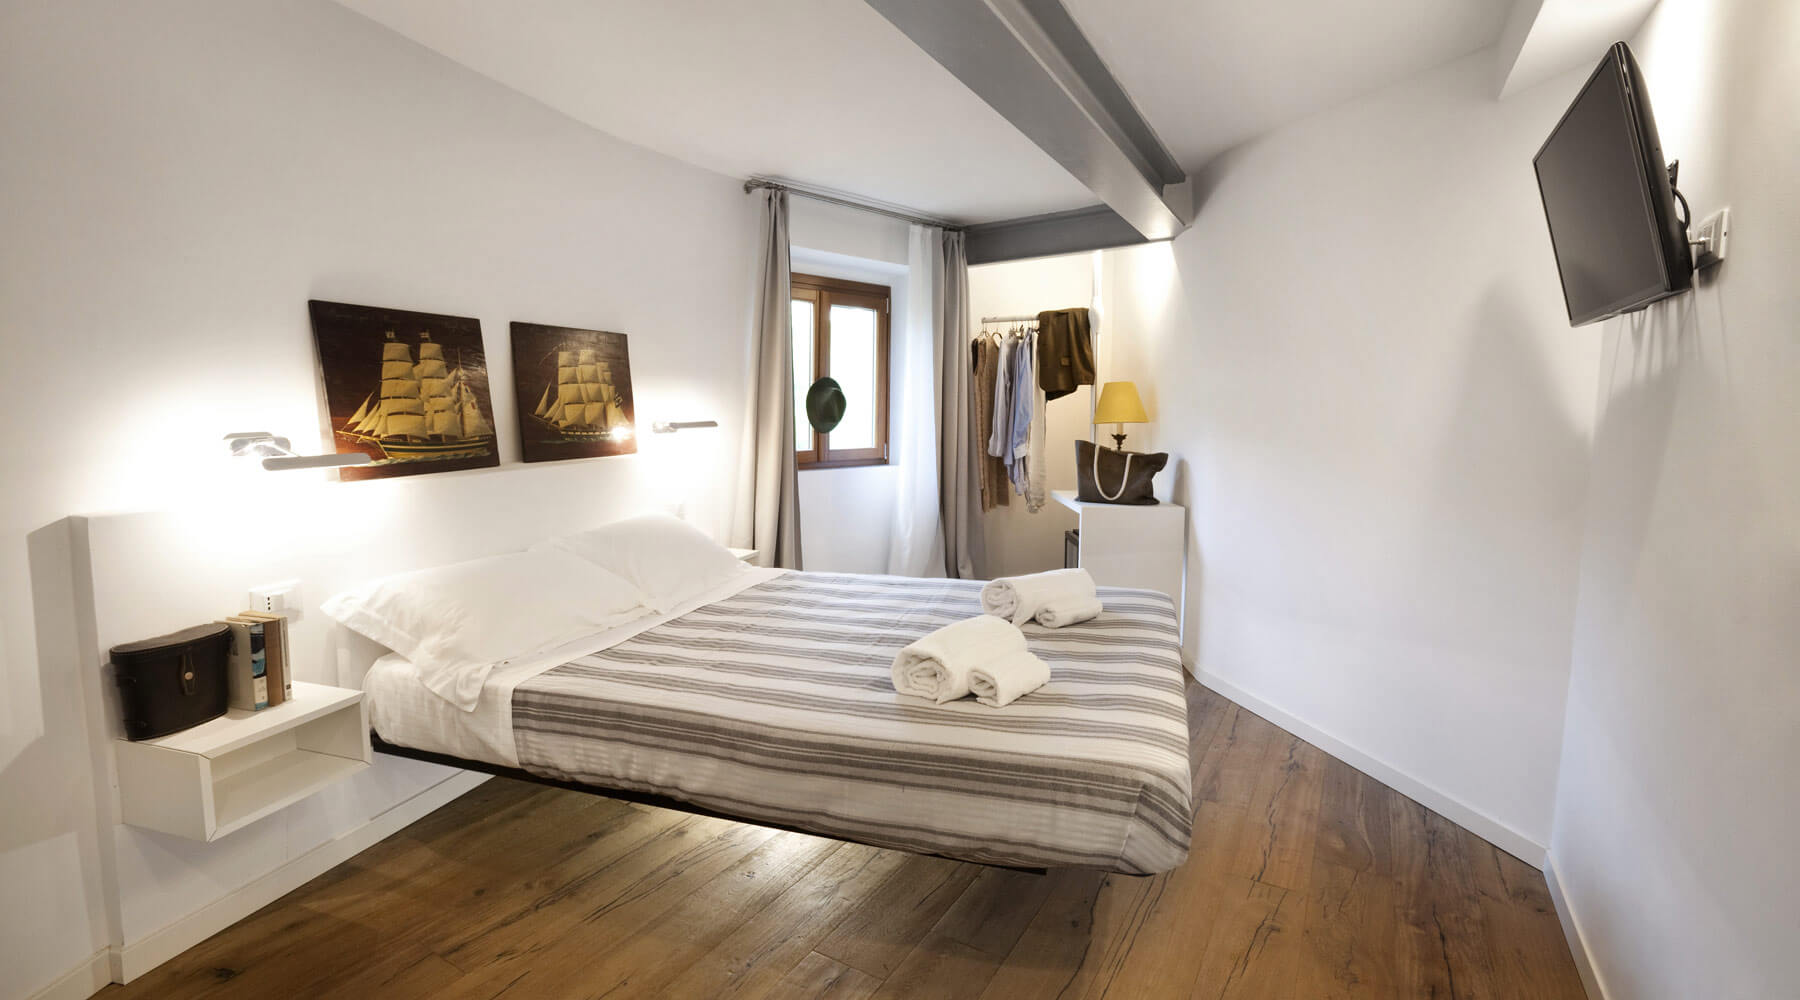 Lago welcome portovenere hotel di design lago - Camera da letto rosy ...